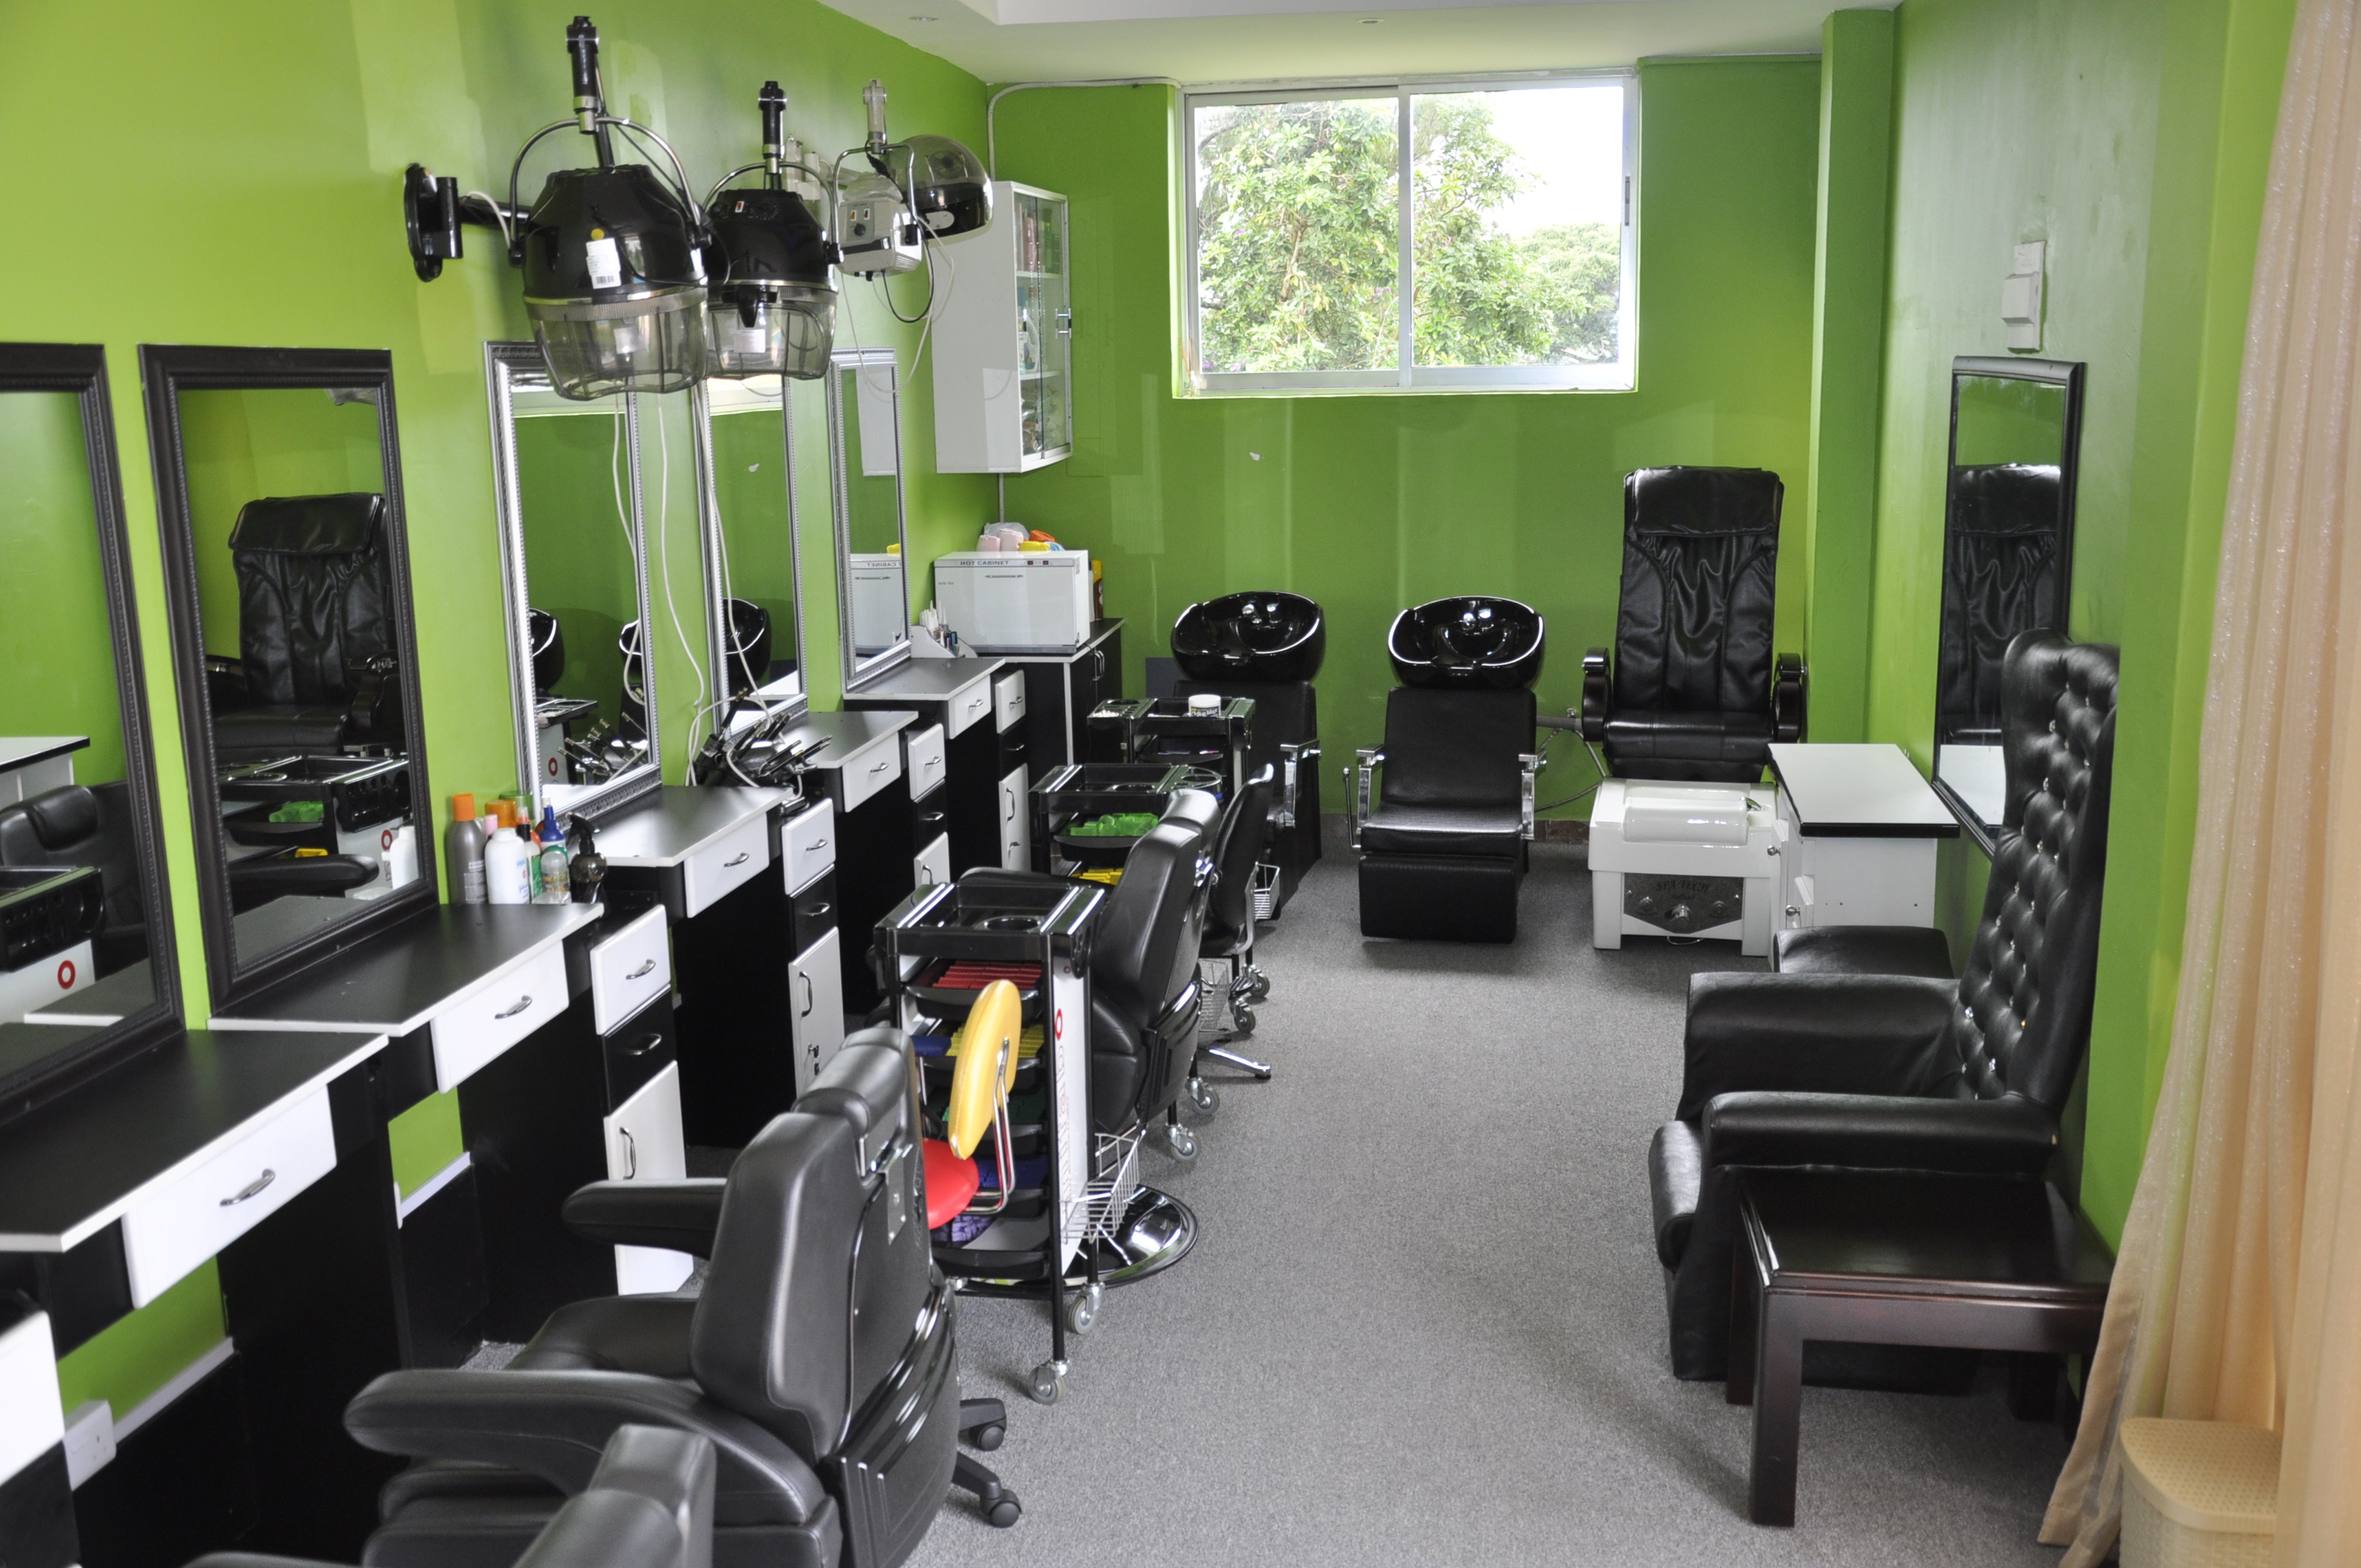 INNER VIEW OF THE SALON